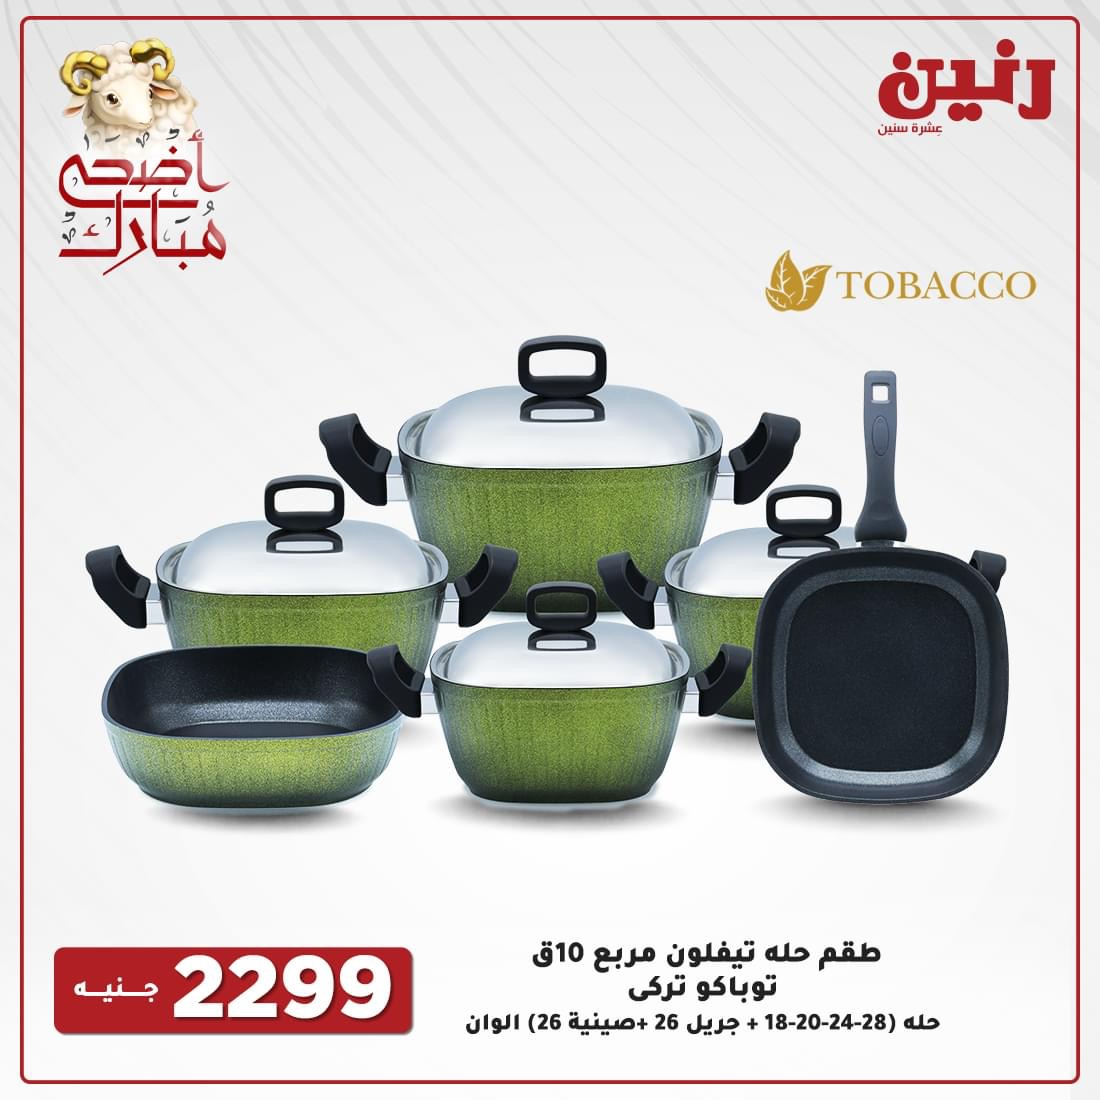 Raneen offers today for appliances and household appliances from July 22 to 24, 2021 30